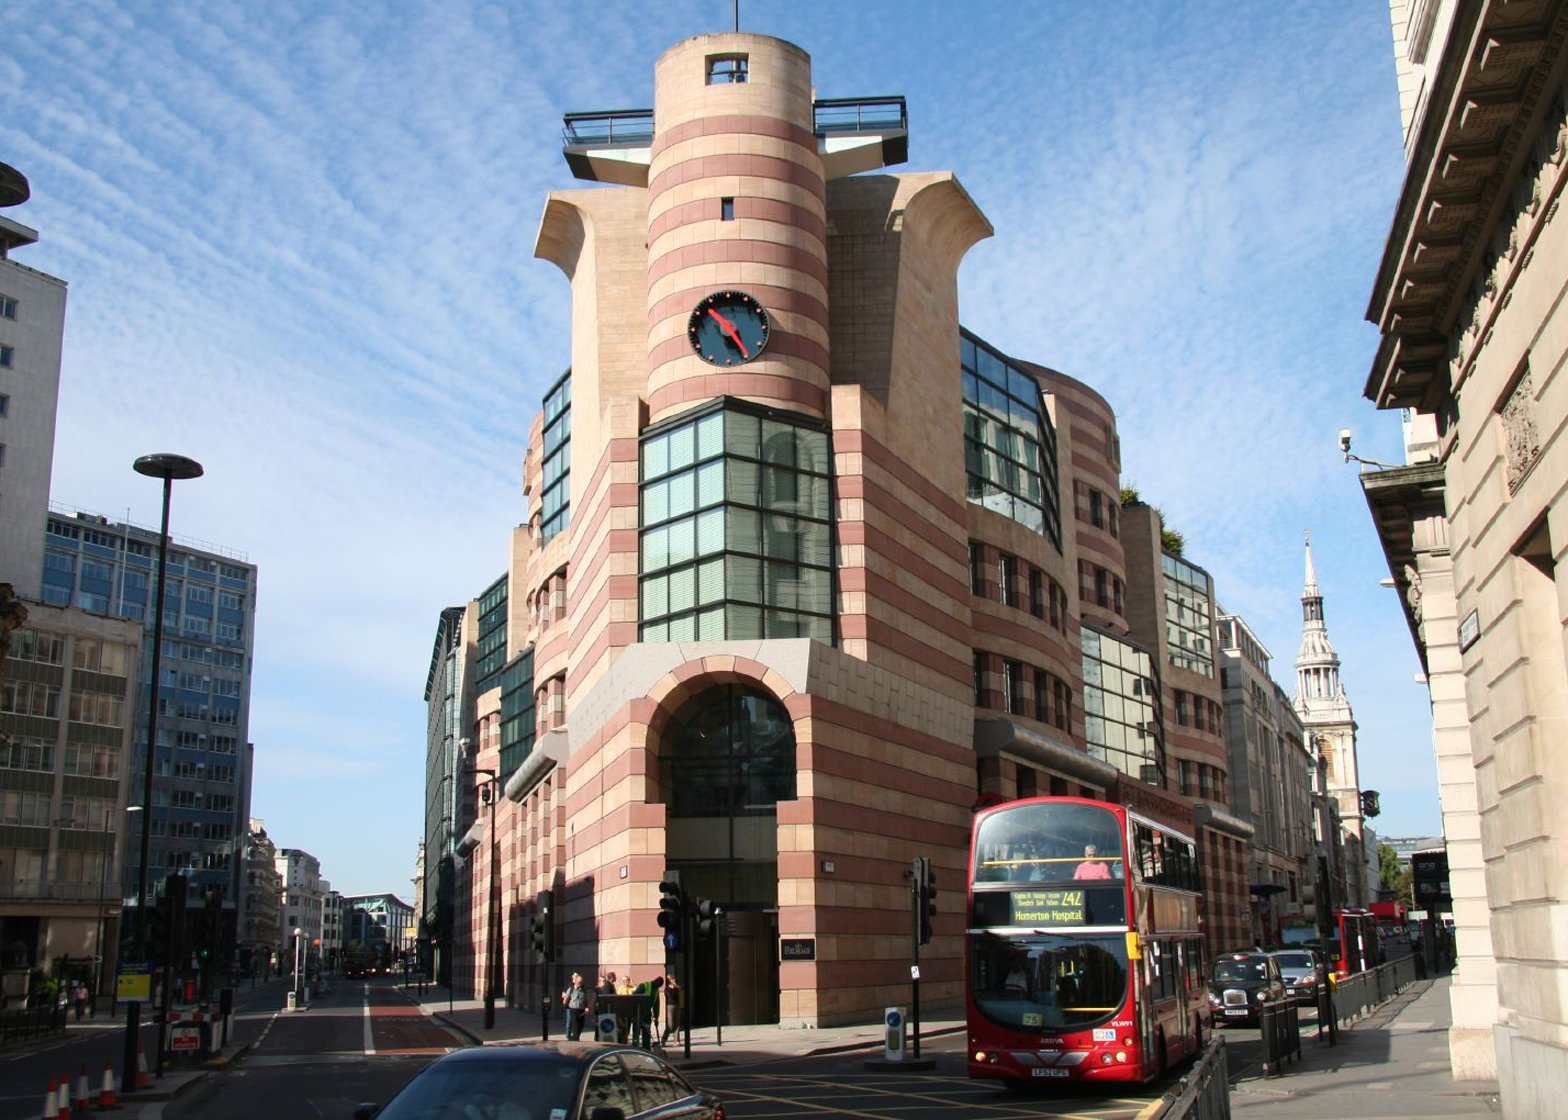 No 1 Poultry by James Stirling